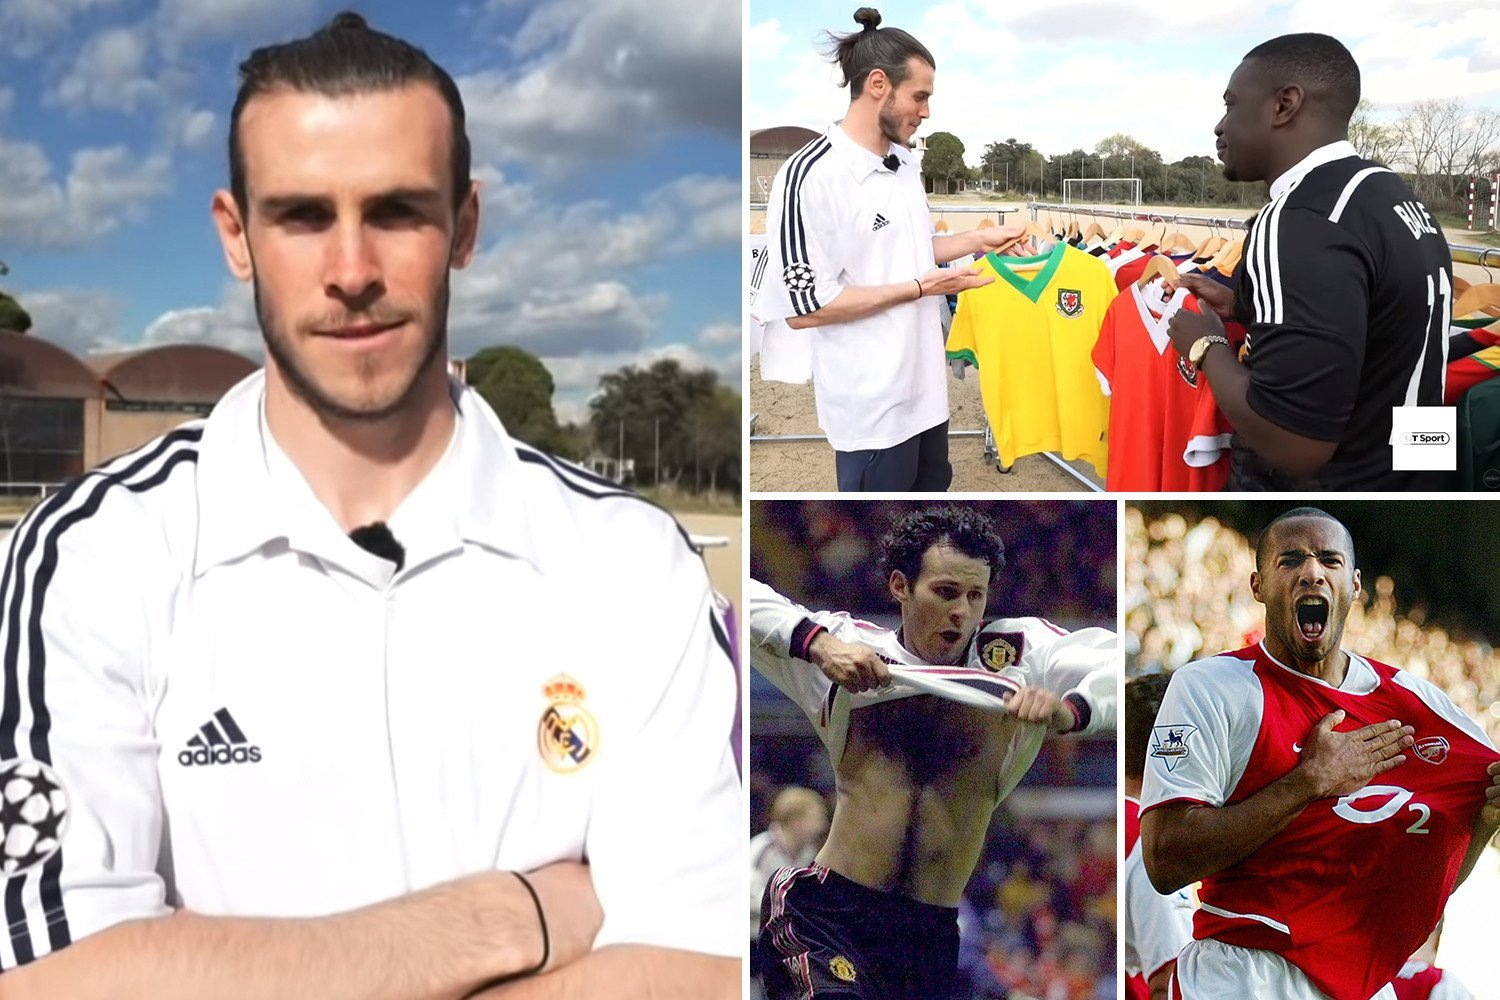 Ex-Spurs star Bale reveals he idolised Arsenal legend Henry and Man Utd star Giggs as a kid